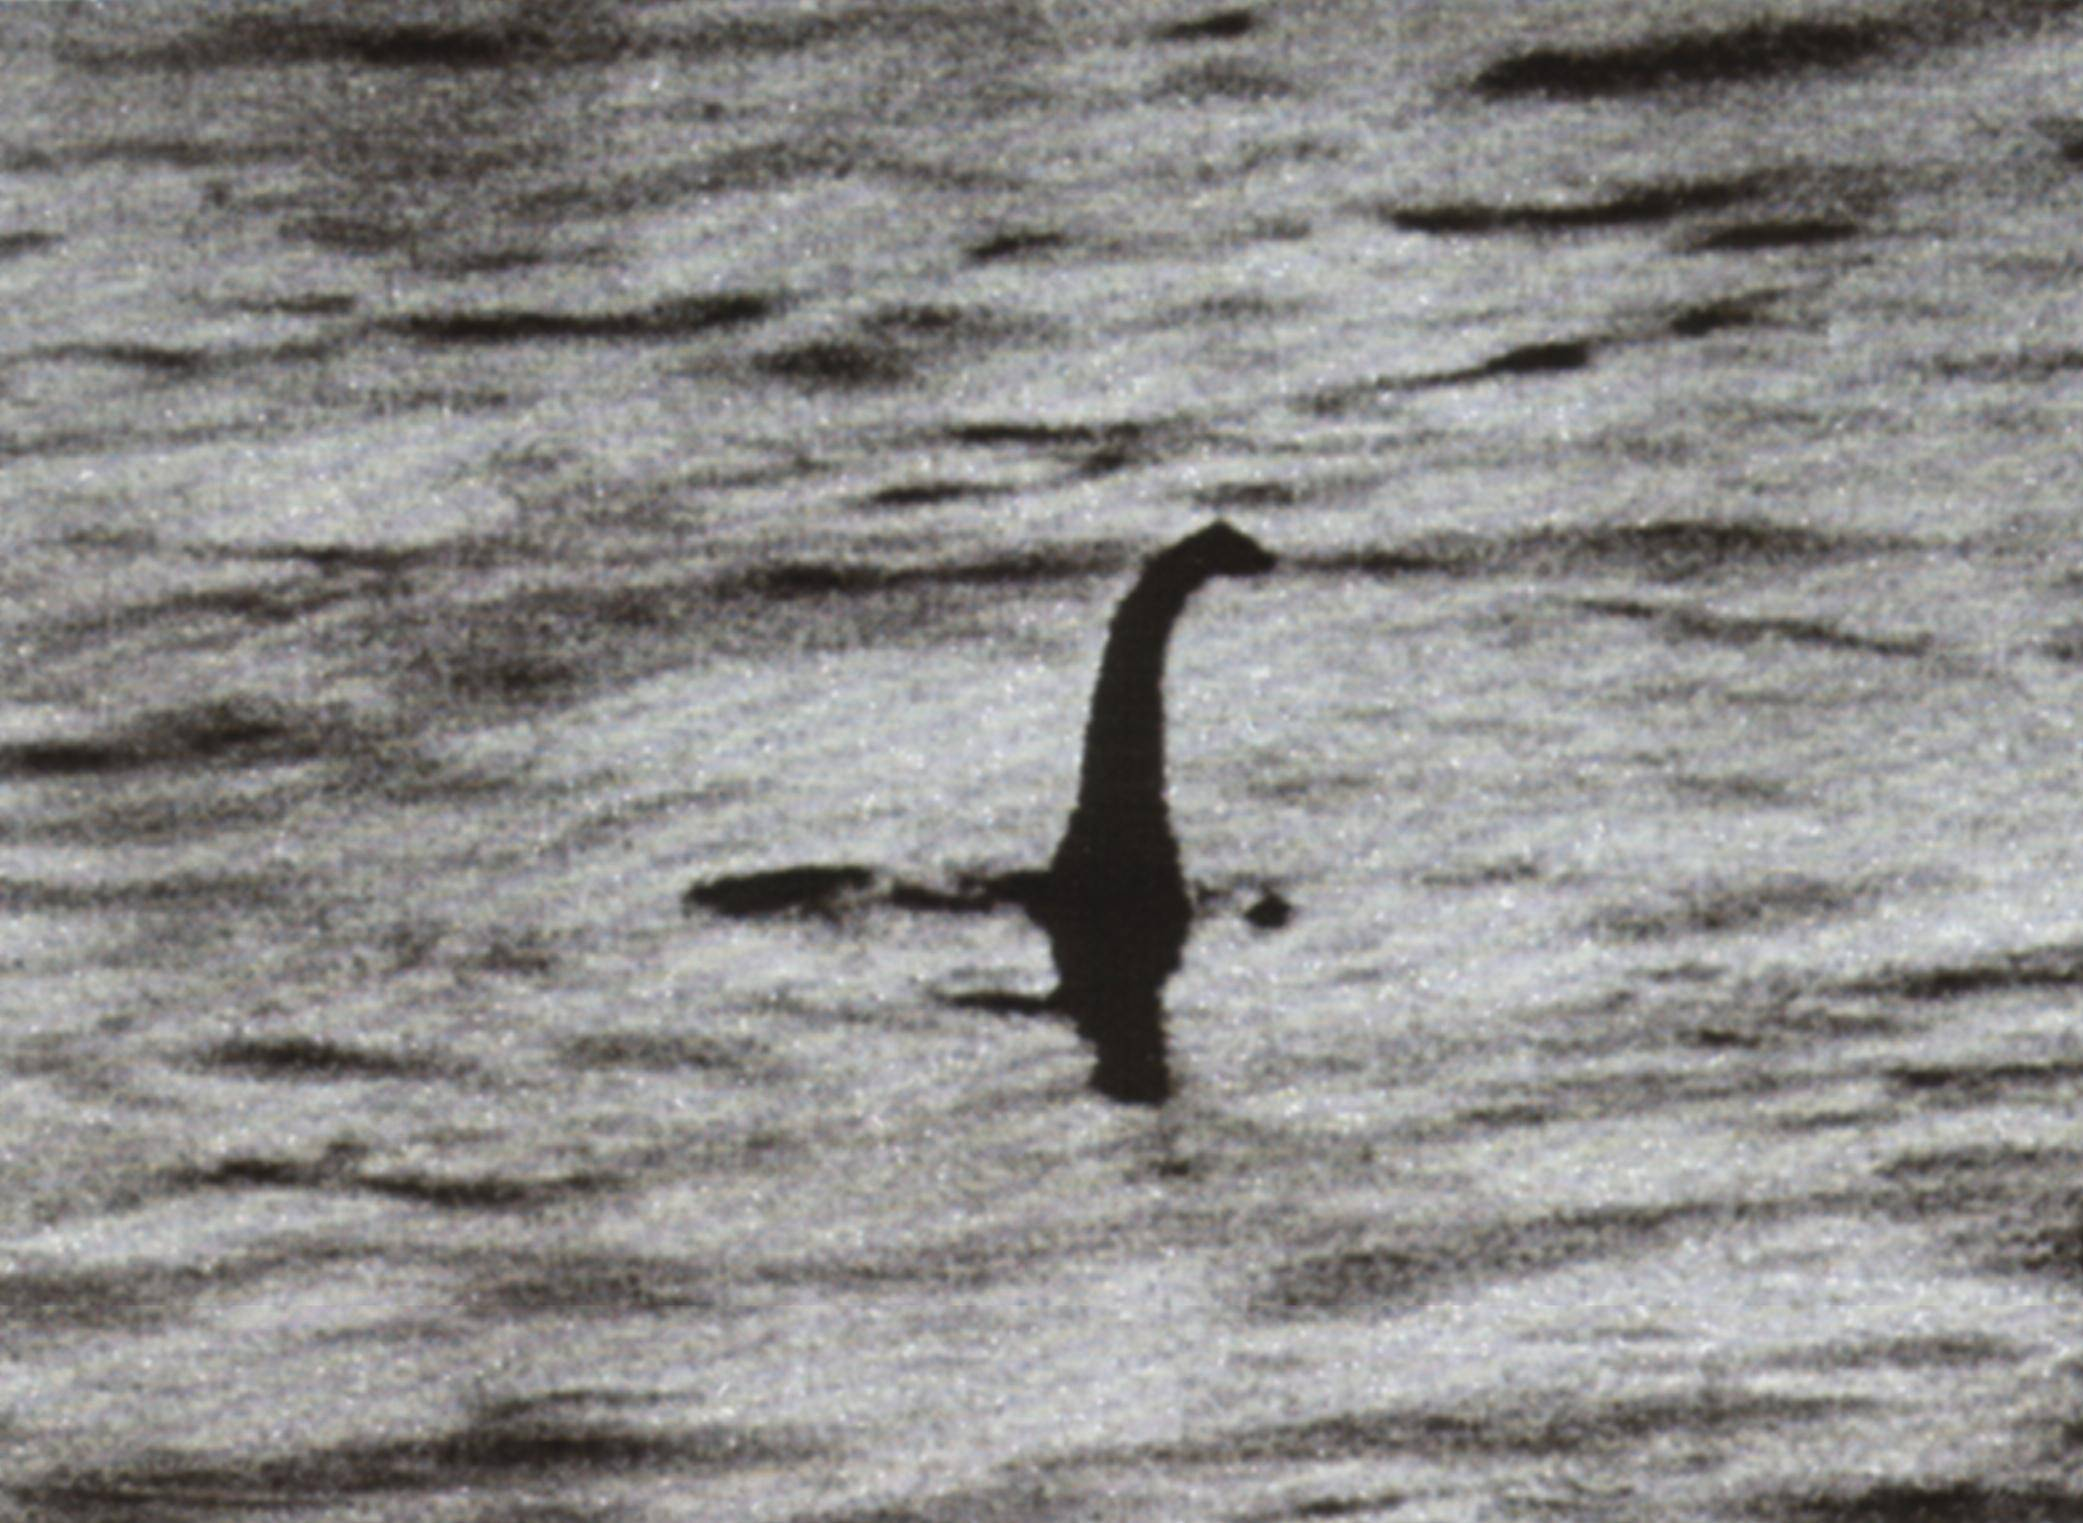 Loch Ness Monster Sightings 2014 The surgeons photograph